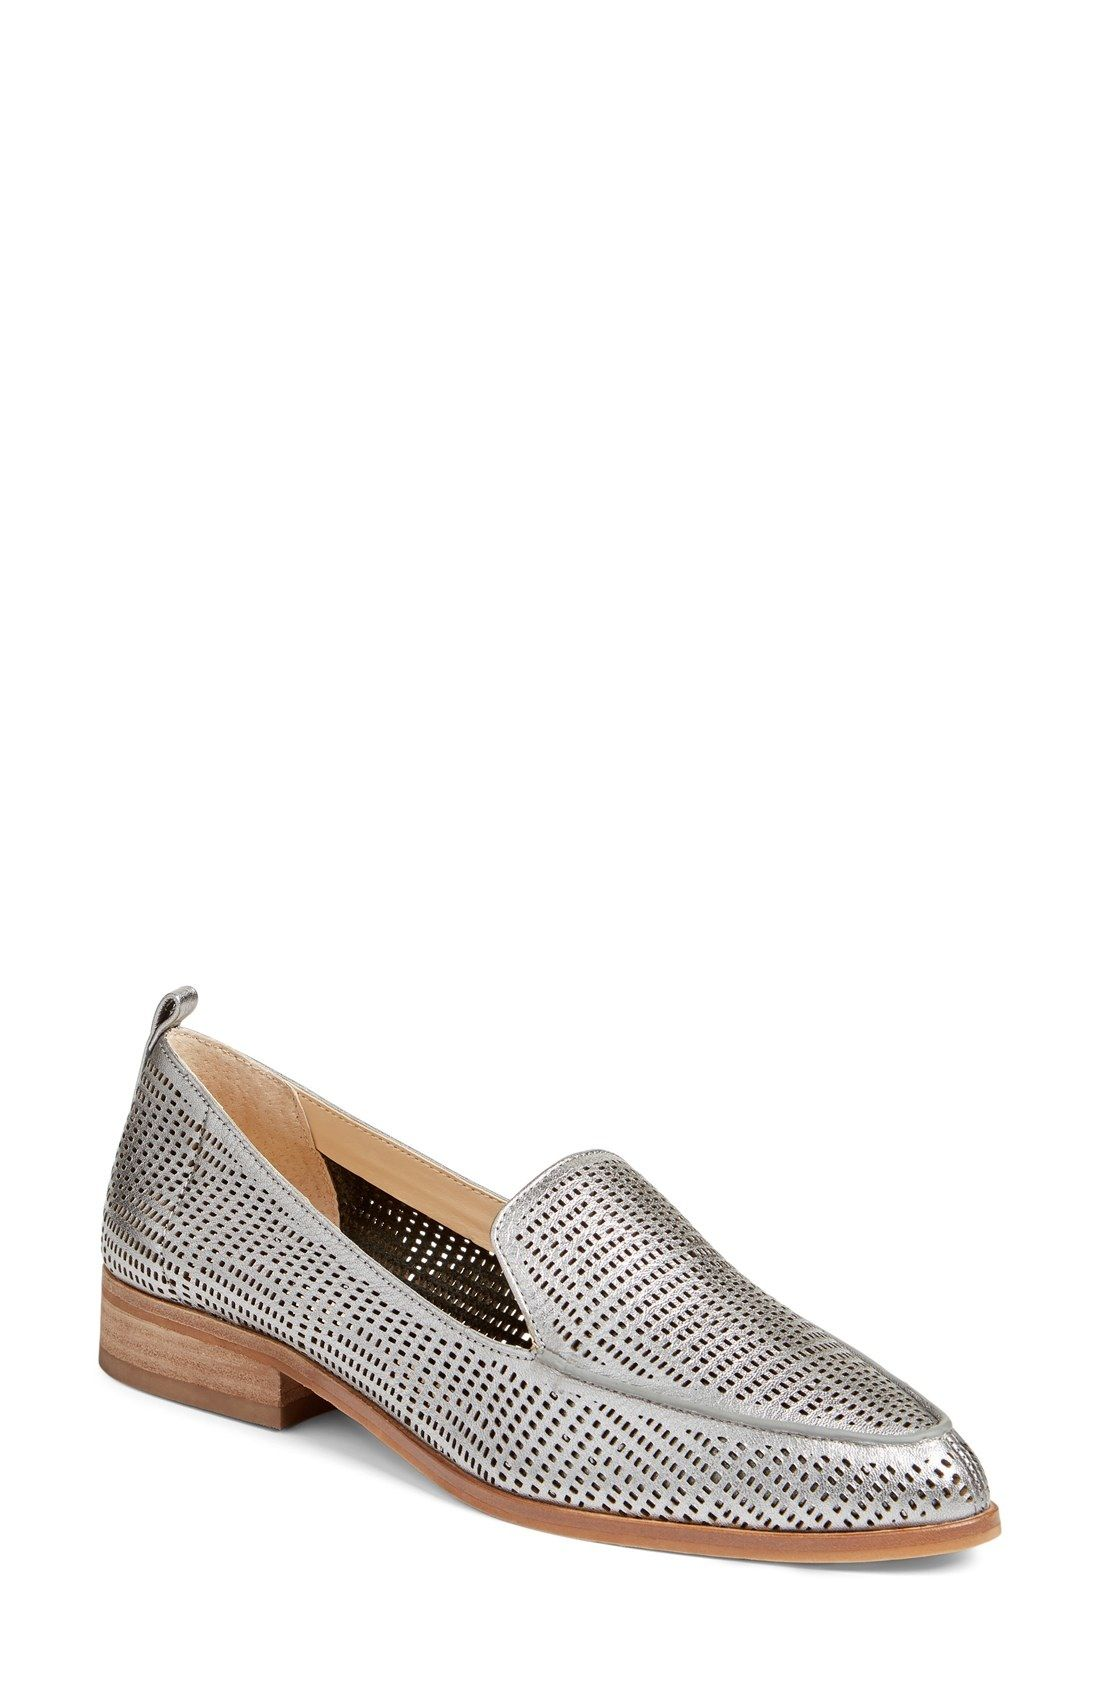 02bd22e6feb Vince Camuto  Kade  Cutout Loafer (Women) (Nordstrom Exclusive) available  at  Nordstrom